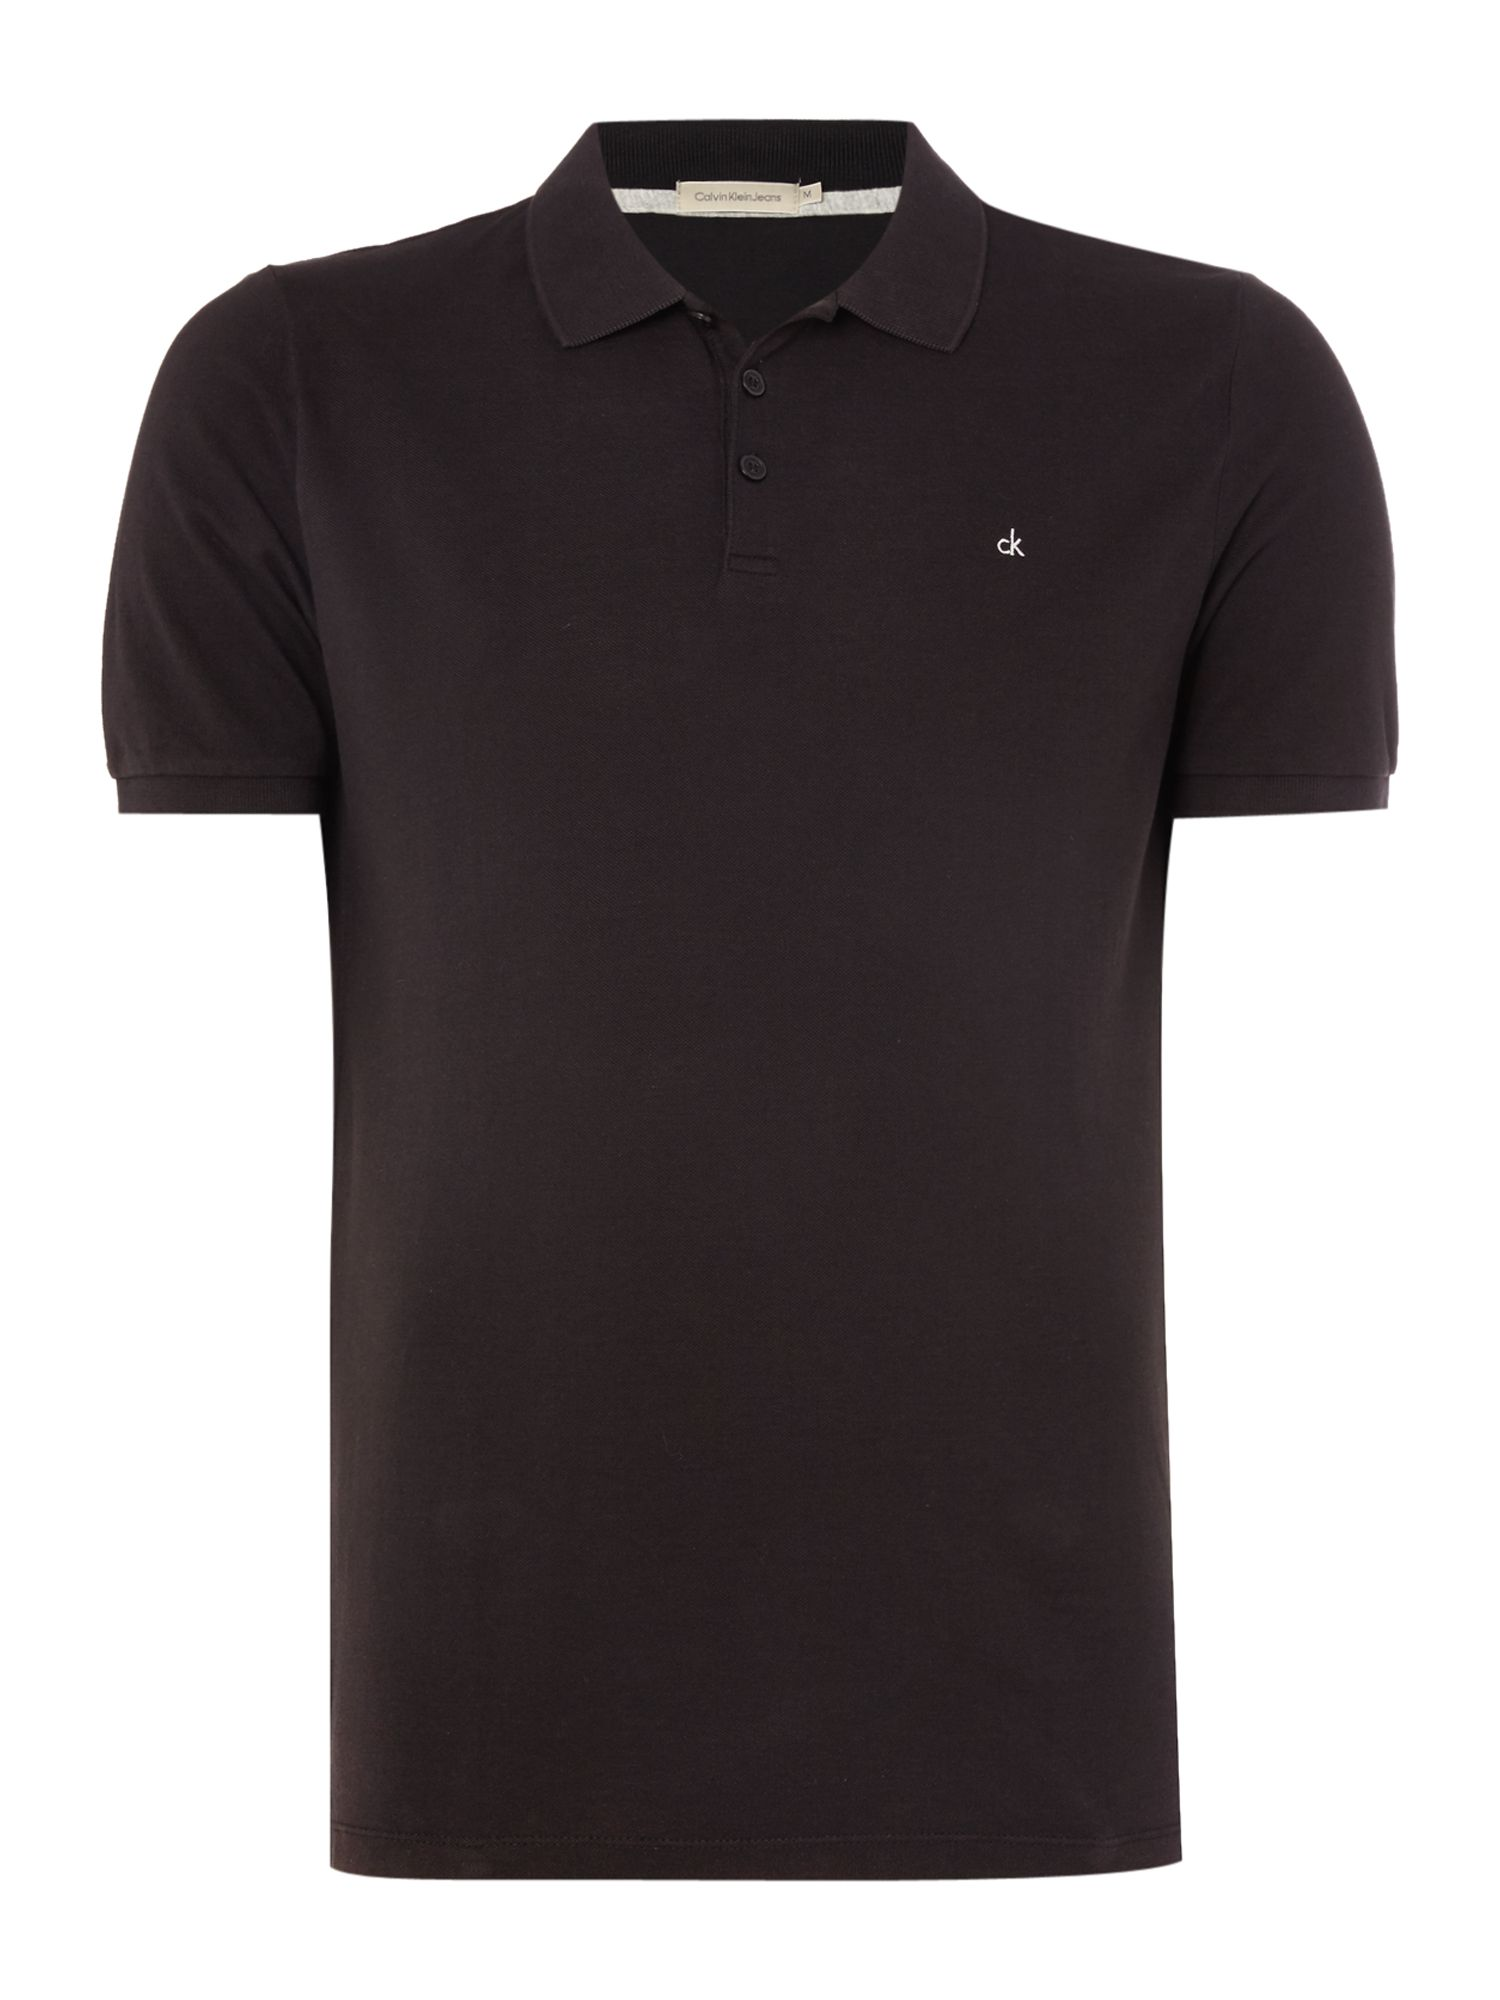 Men's Calvin Klein Paul Polo Shirt, Black